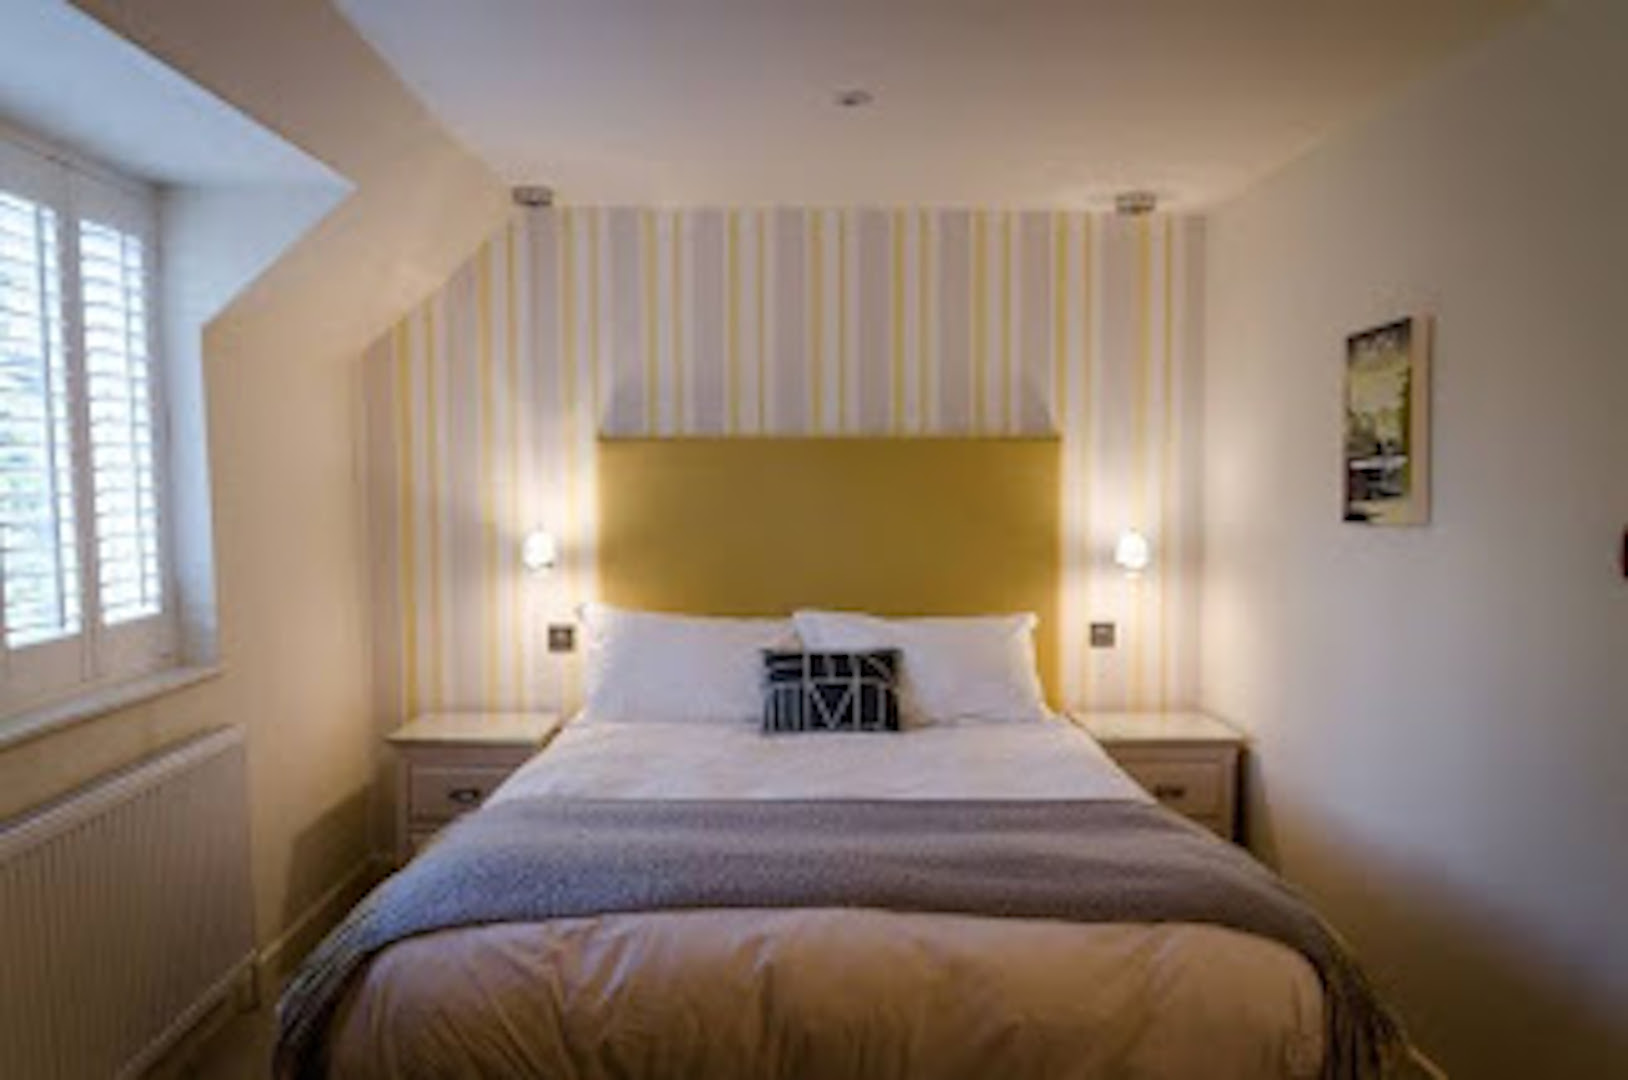 A bedroom with a bed and a window at The Northey Arms.